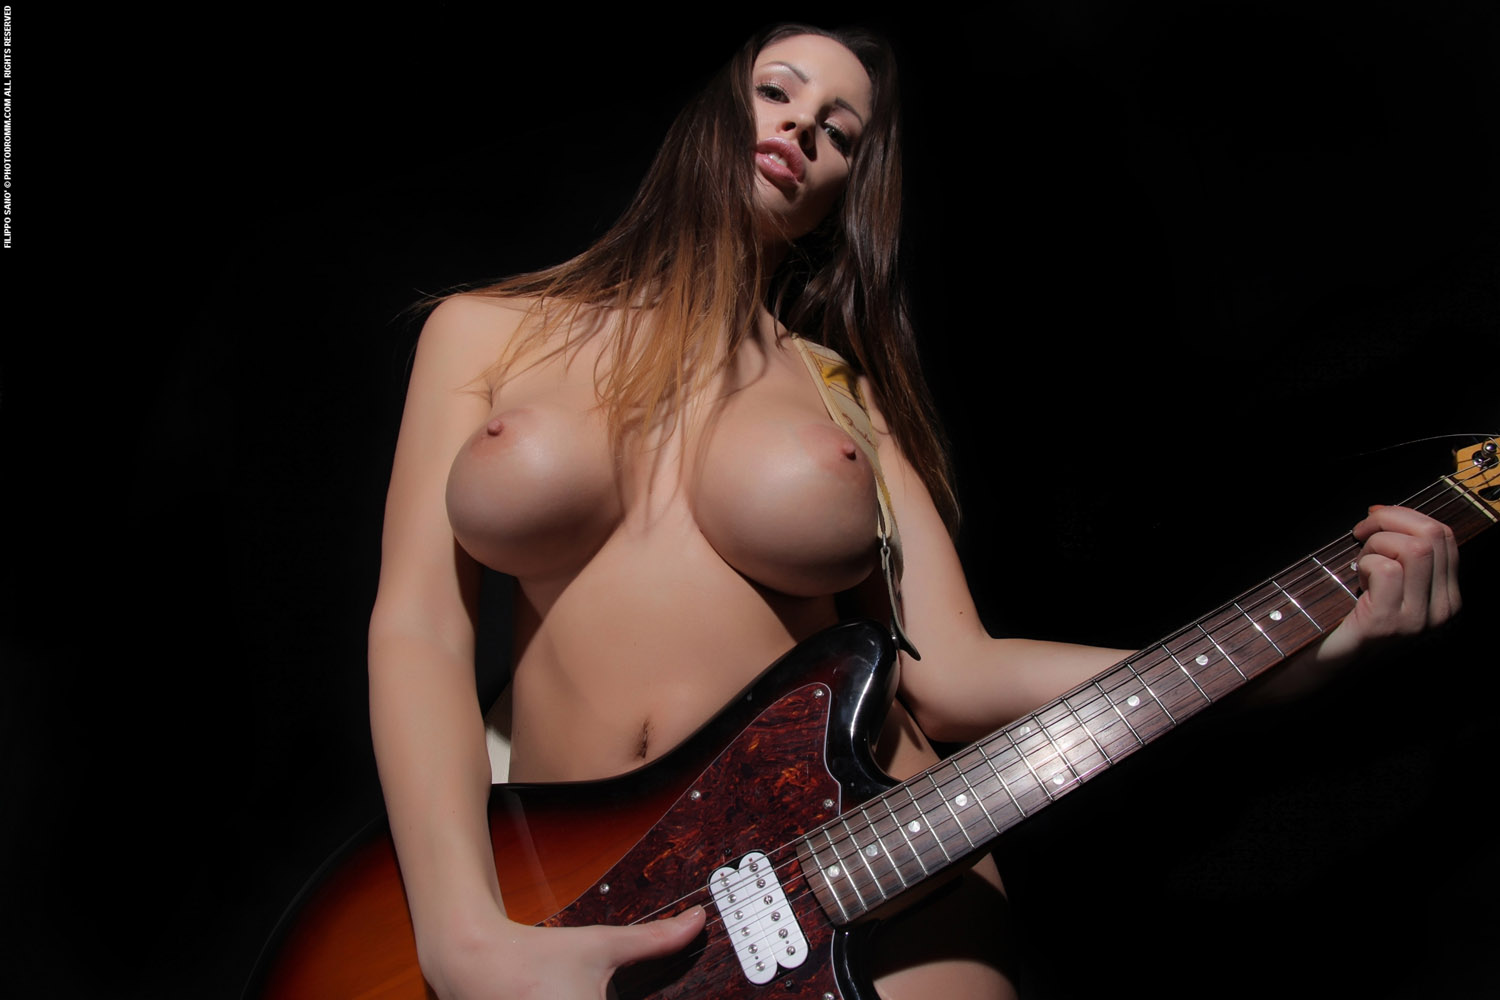 Xxx guitar girl pictures fucks scene